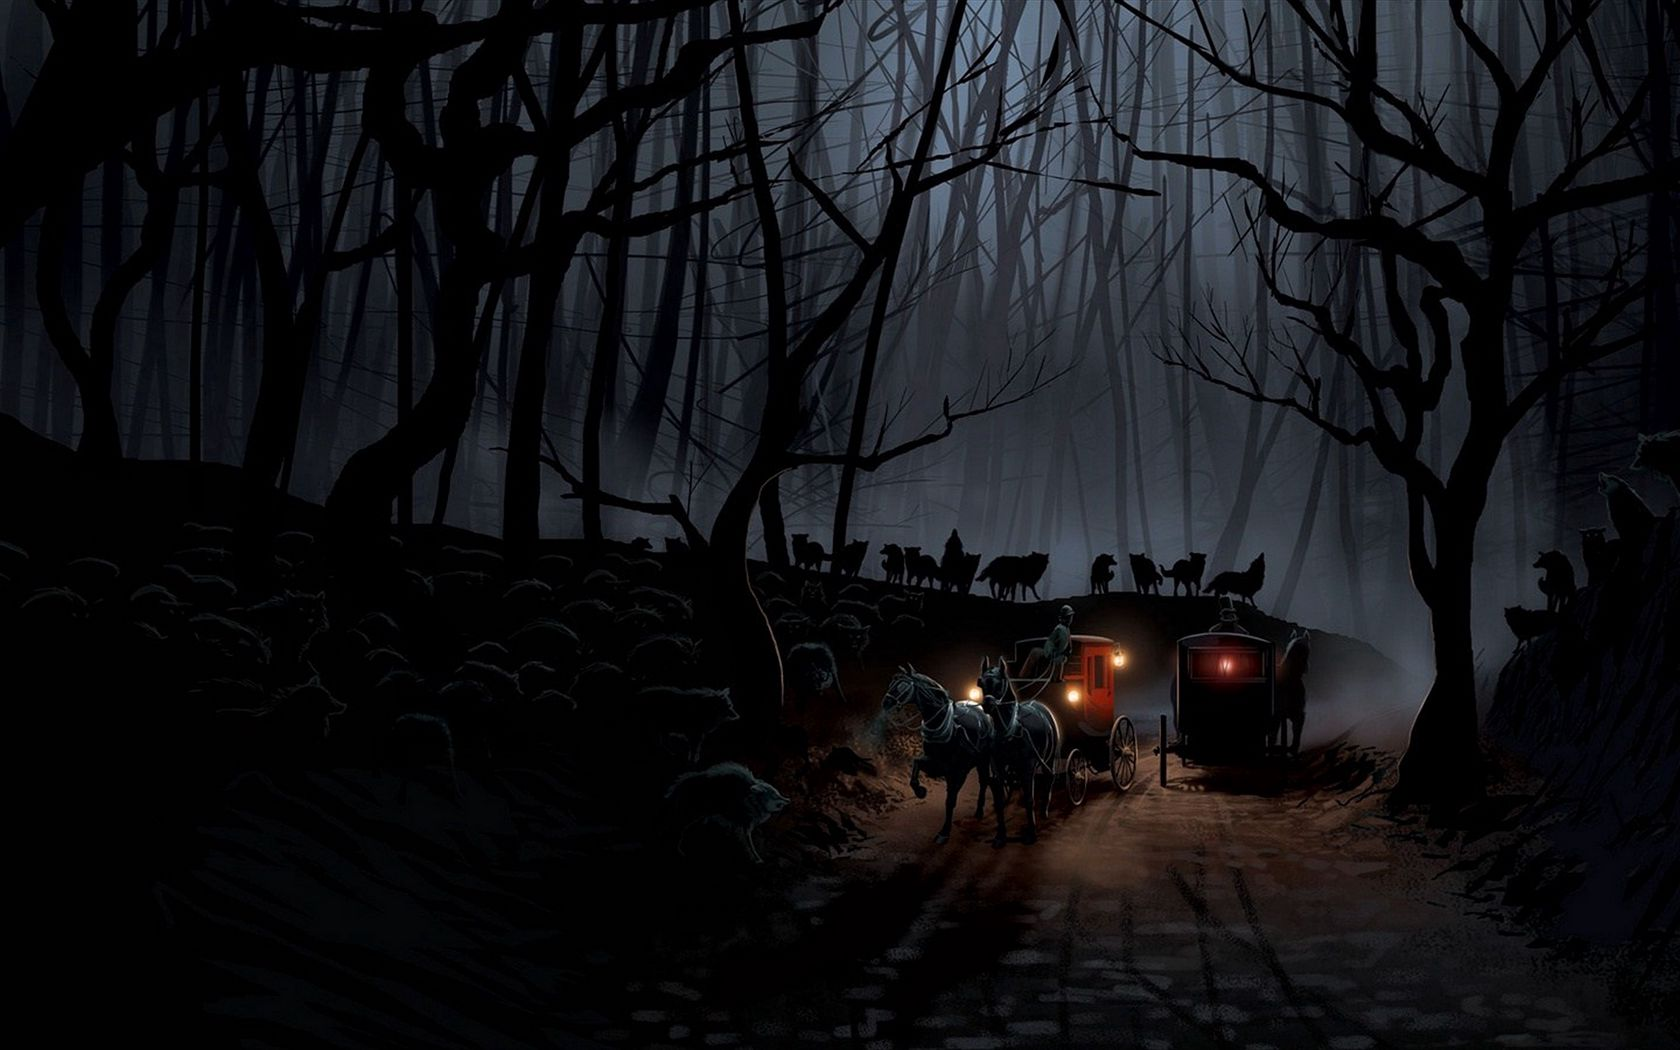 1680x1050 Wallpaper carriage, wood, night, wolves, flight